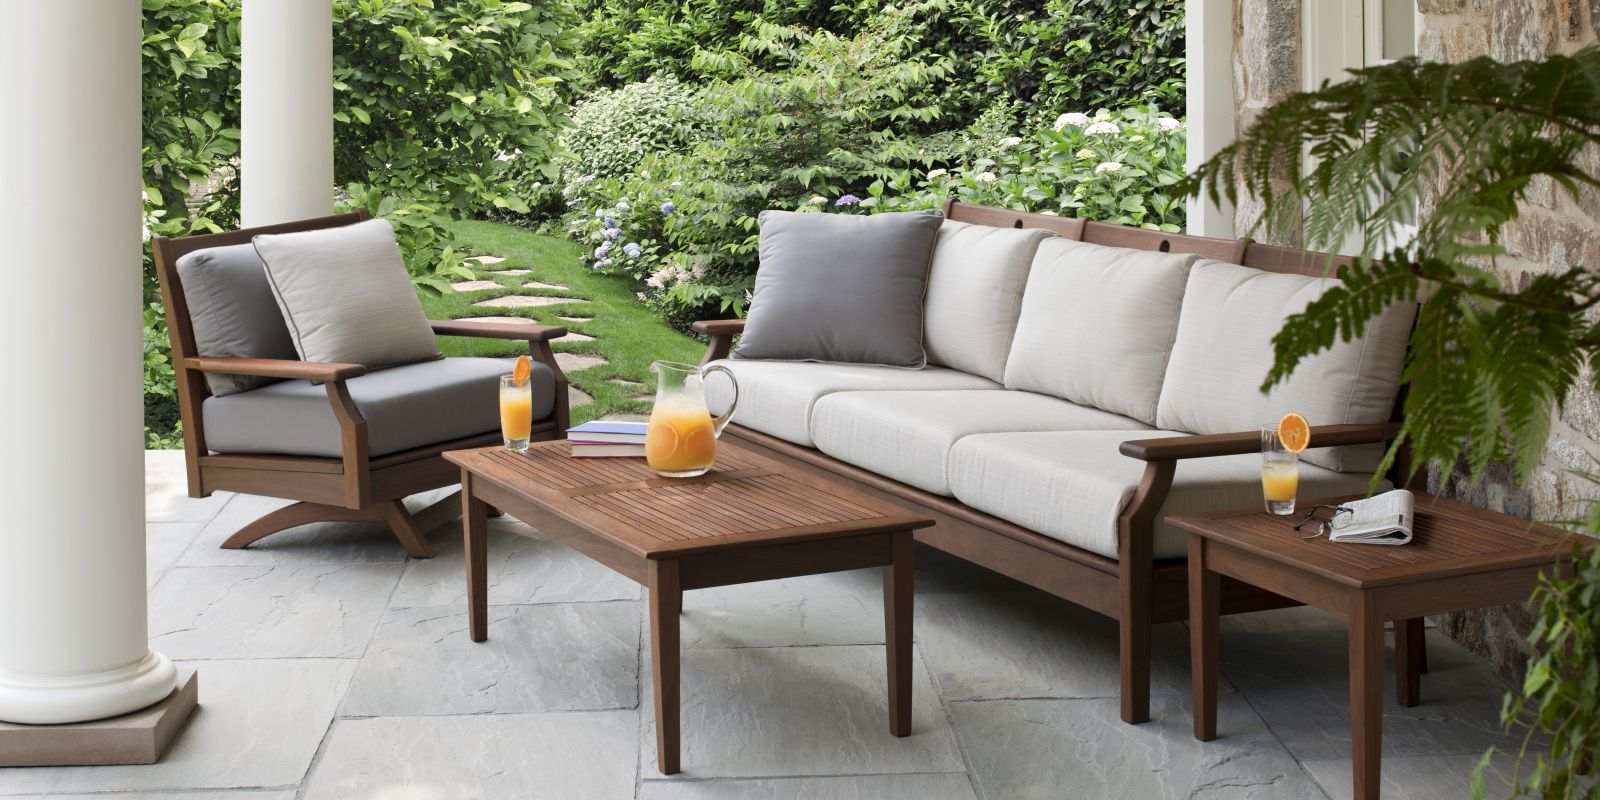 Outdoor Patio Design Specialist | American Casual Living on Casual Living Patio id=72219